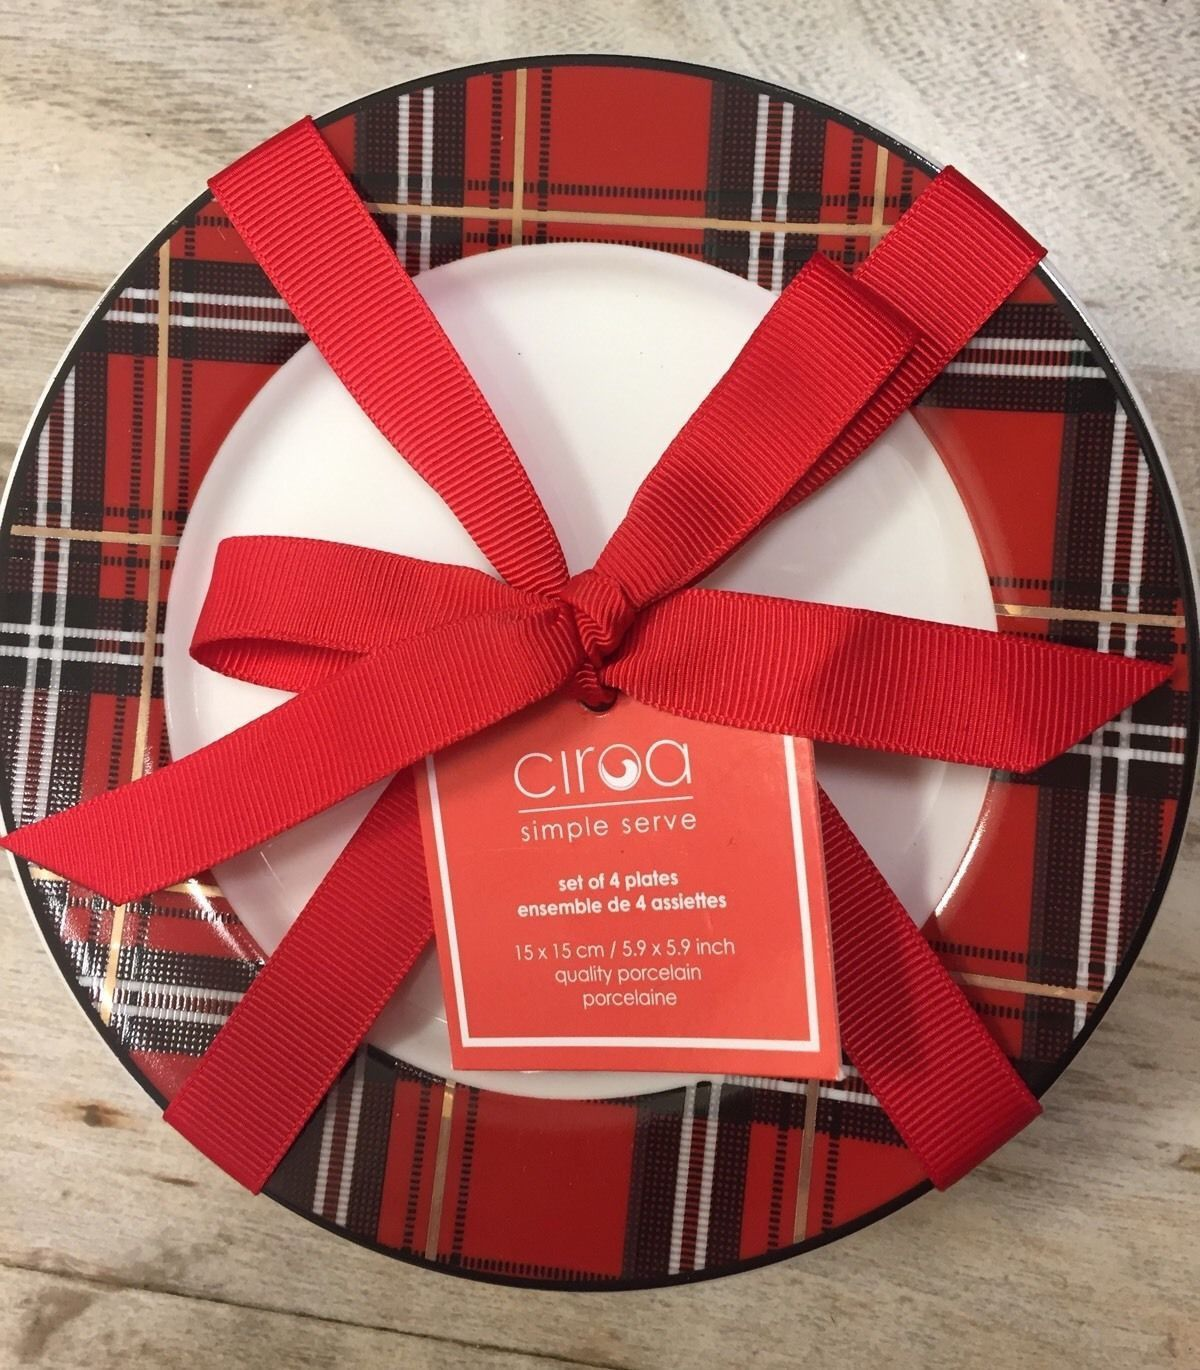 Tartan Plaid Red u0026 Black Porcelain Bread Snack Plates Set of 4 NEW Ciroa & Tartan Plaid Red u0026 Black Porcelain Bread Snack Plates Set of 4 NEW ...